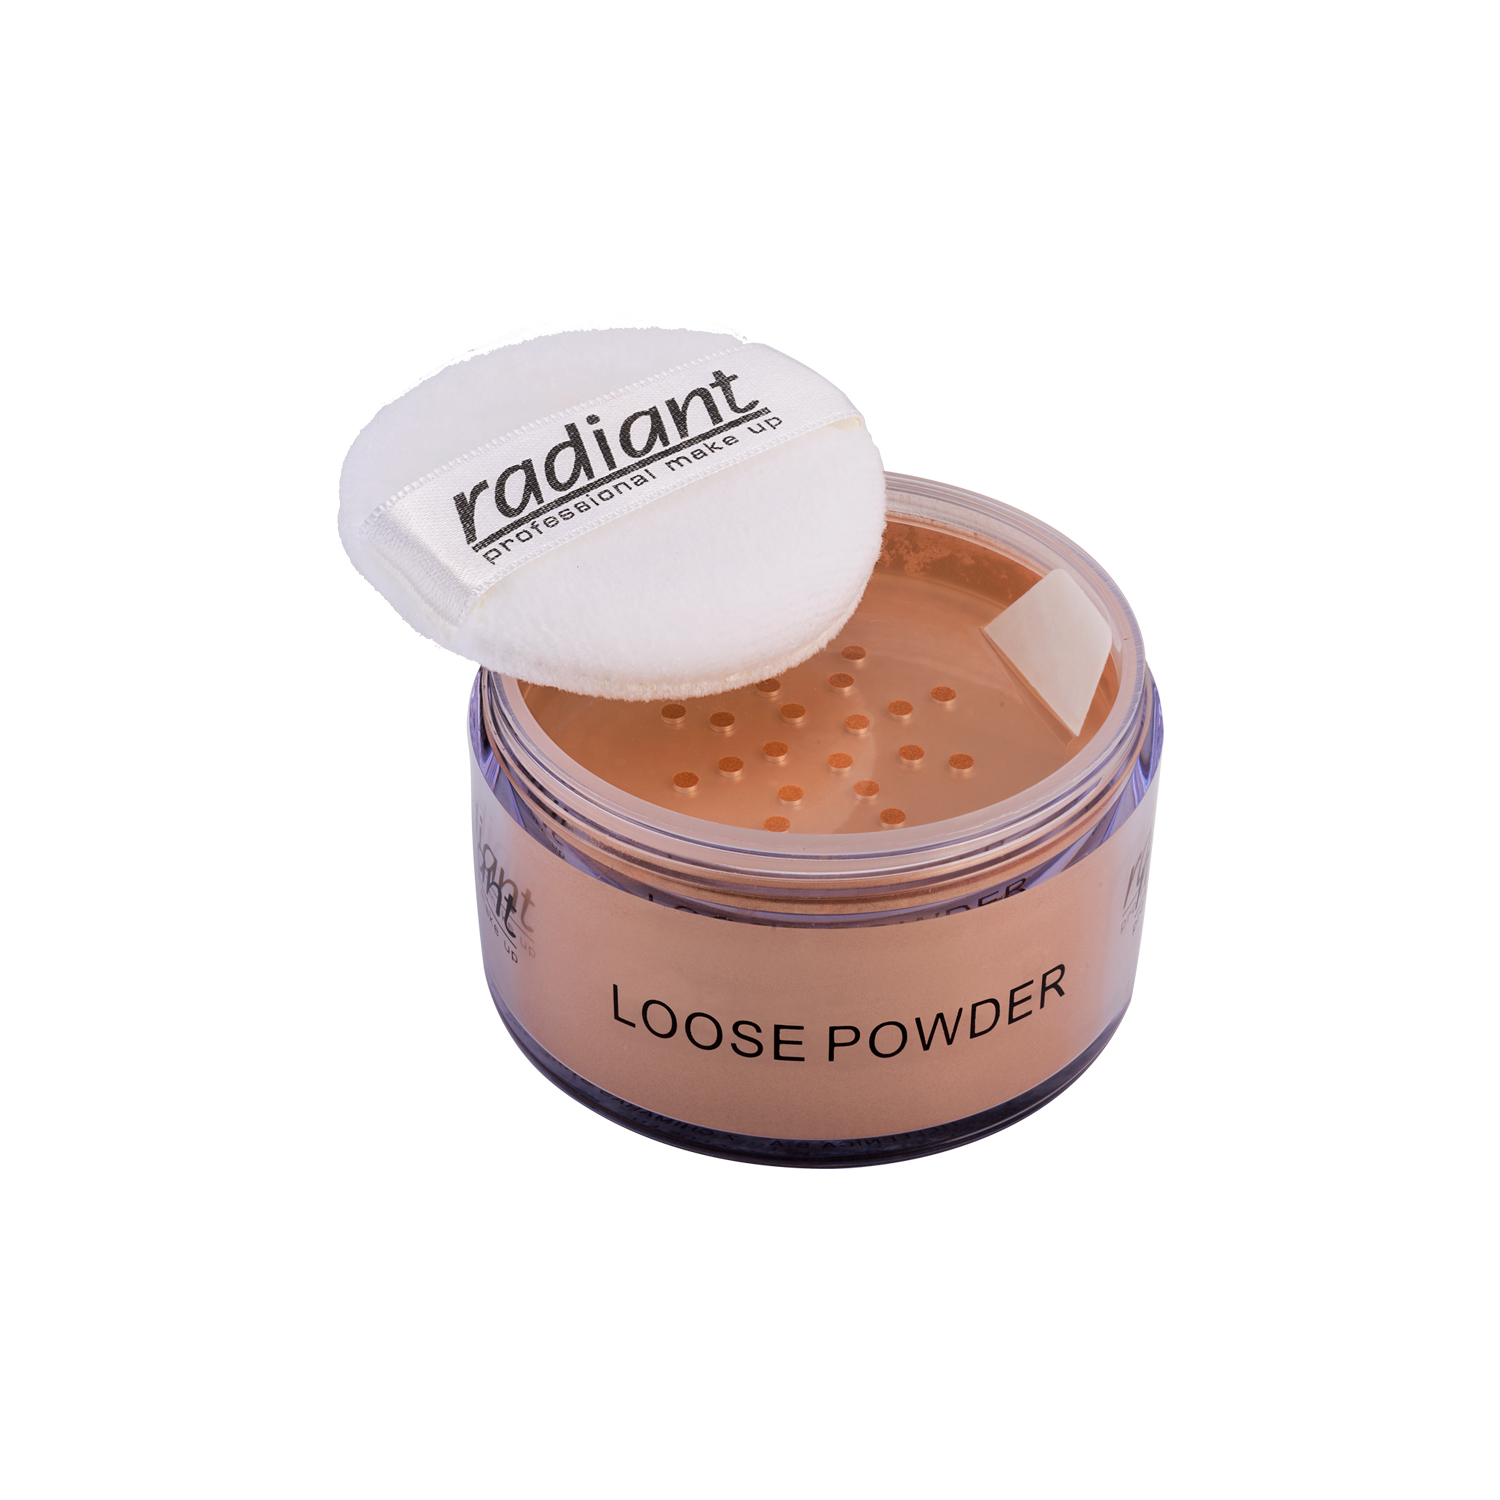 LOOSE POWDER (08 Bronze)